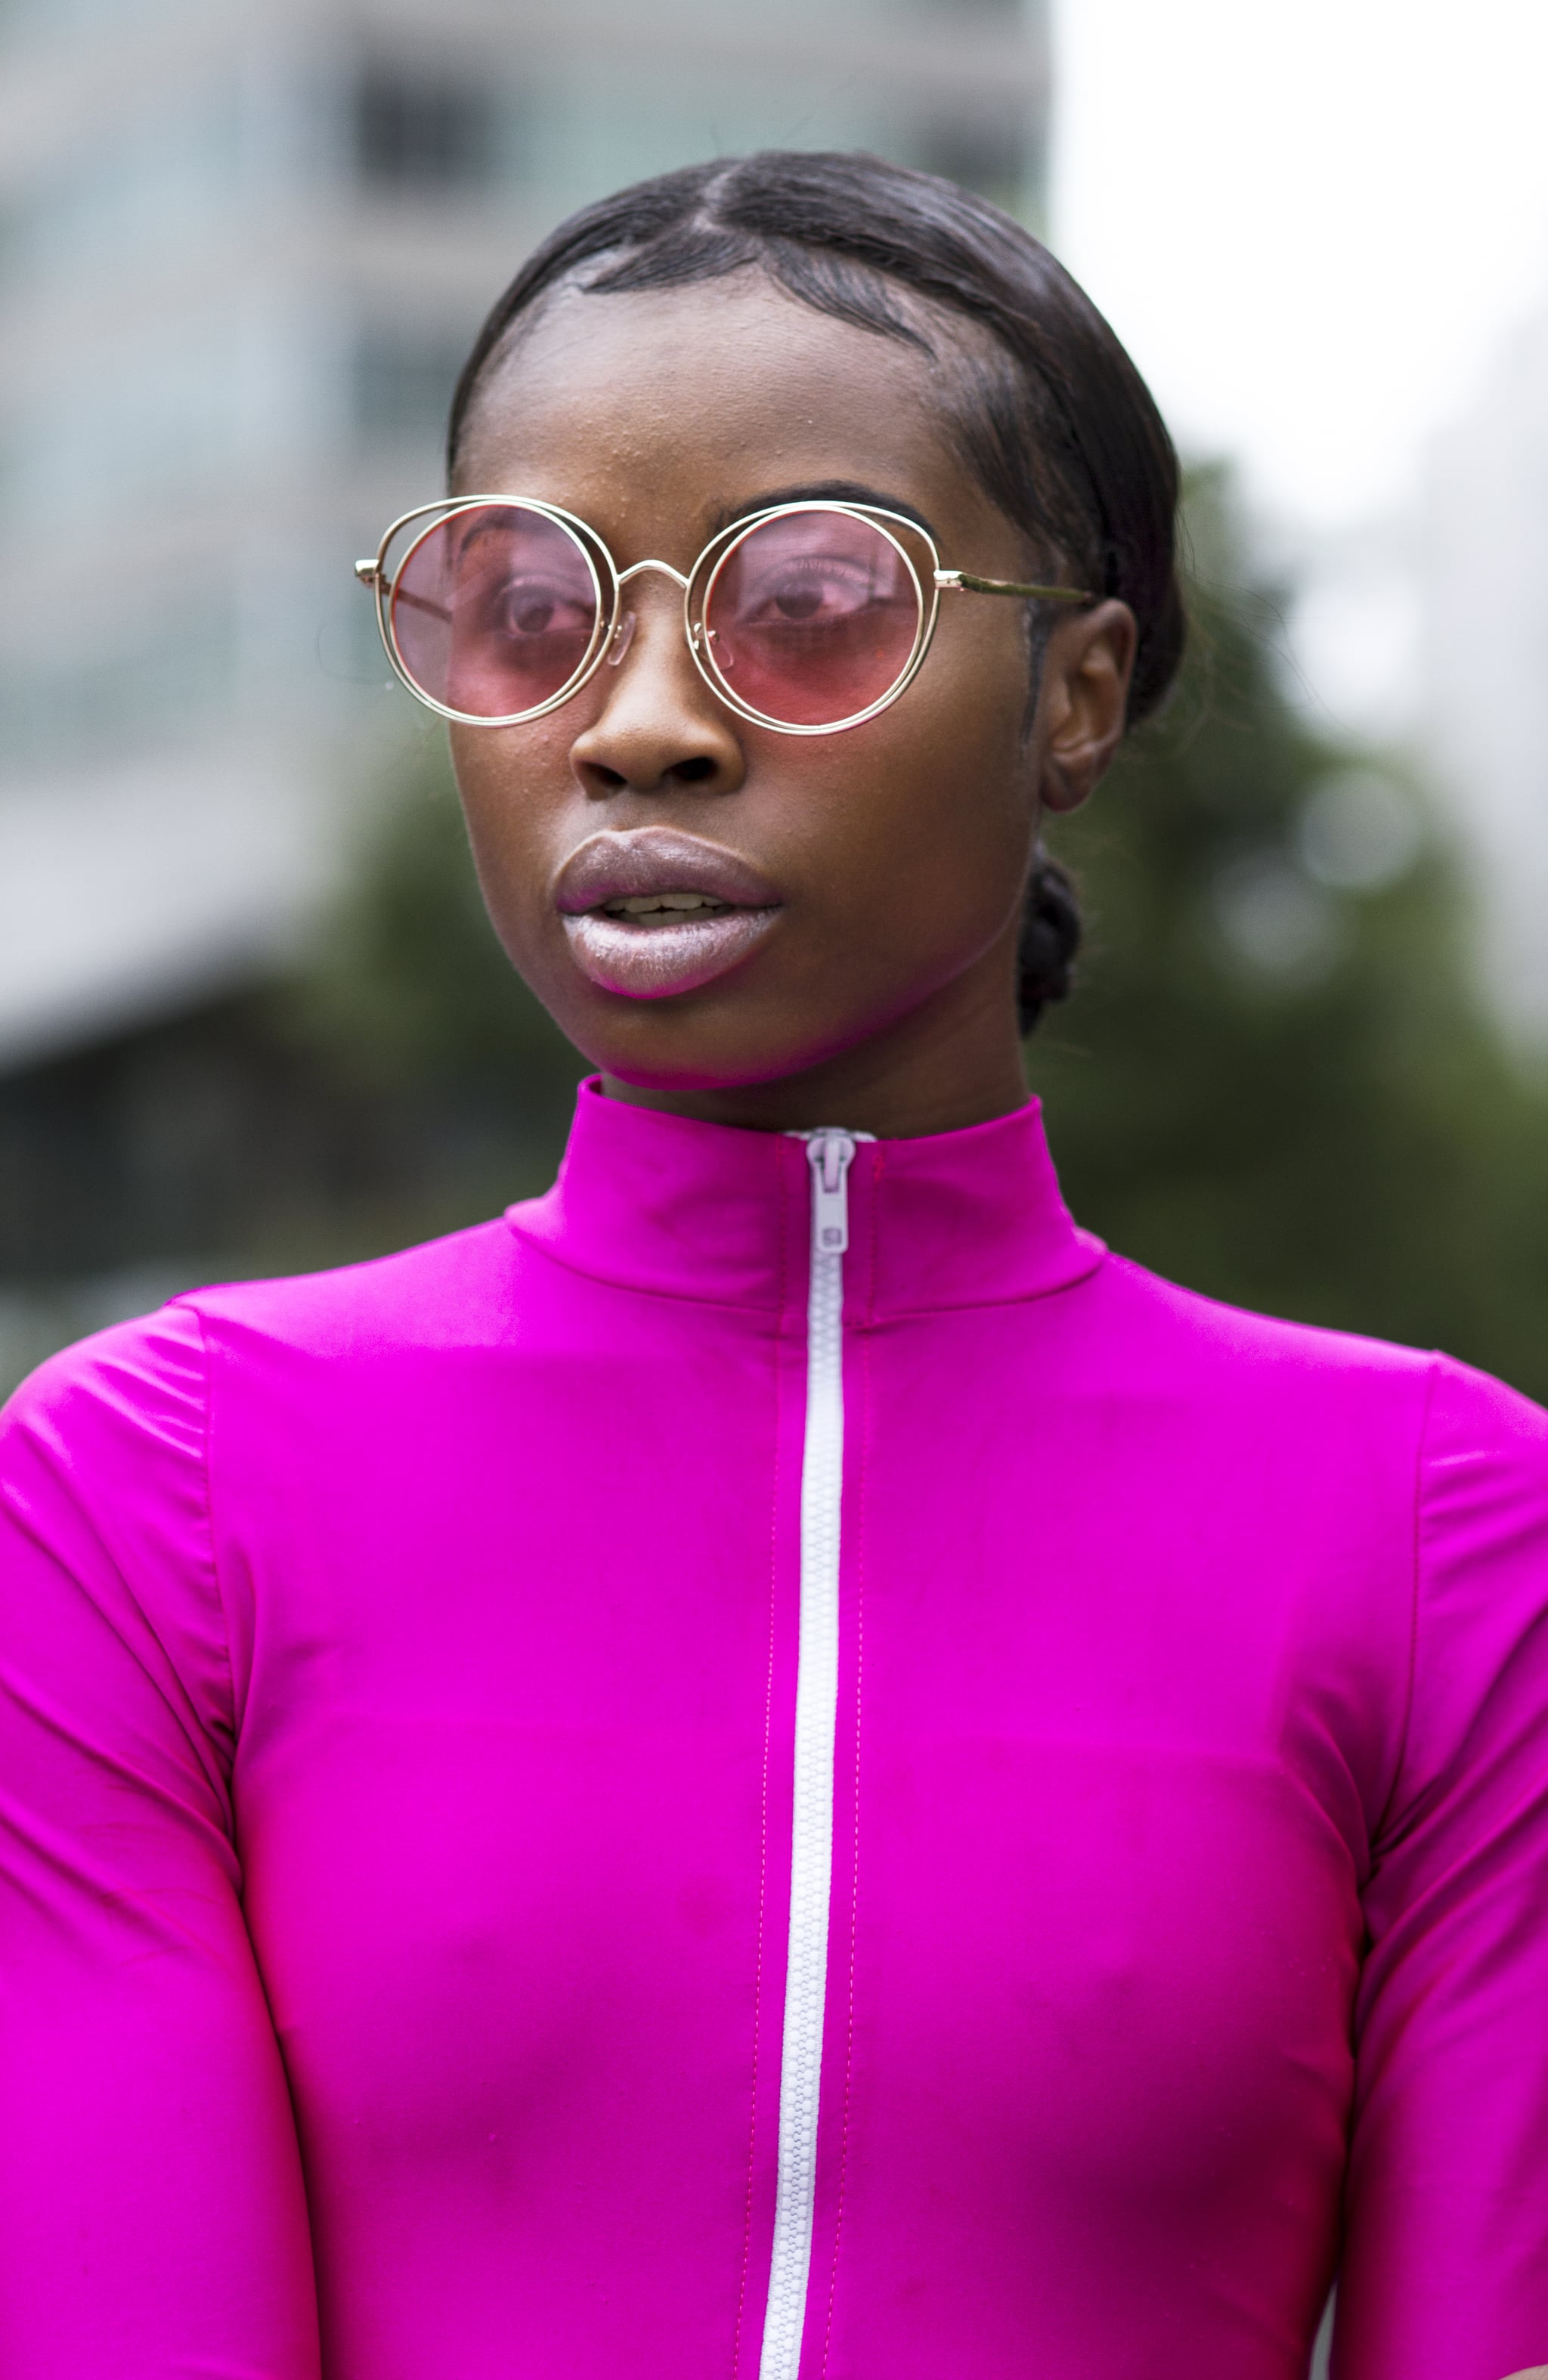 OVERSIZED EXAGGERATED Funky Retro SUNGLASSES Unique Purple Crystal Fashion Frame